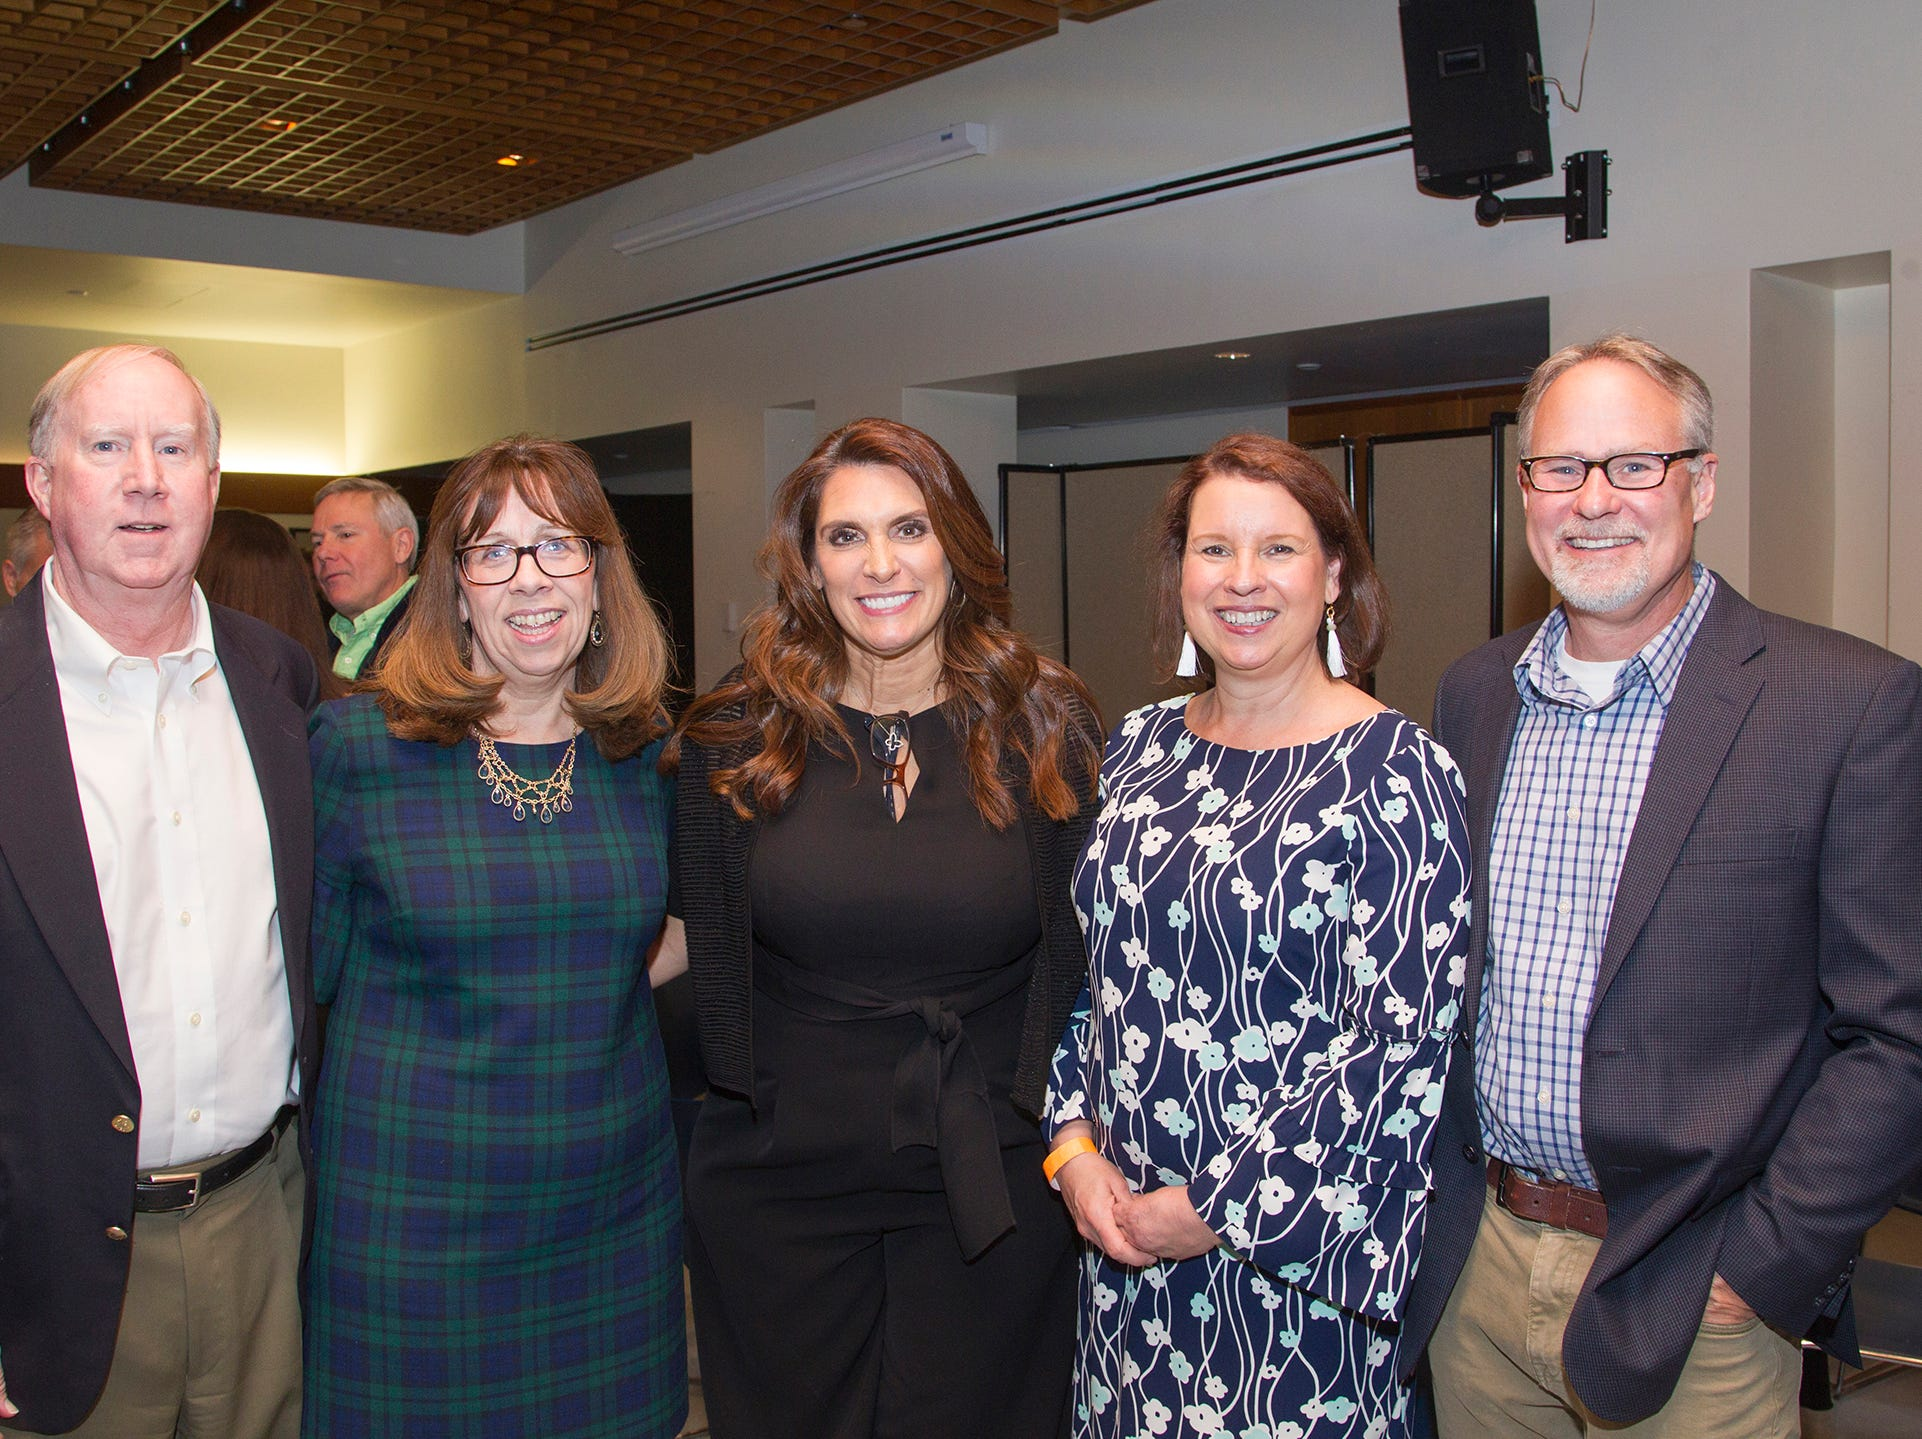 Ray and Cathy Corbet, Christine Callahan, Nancy and Dave Kennedy. Anthony Kearns benefit concert to benefit Julia's Butterfly Foundation at West Side Presbyterian Church in Ridgewood. 3/23/2019